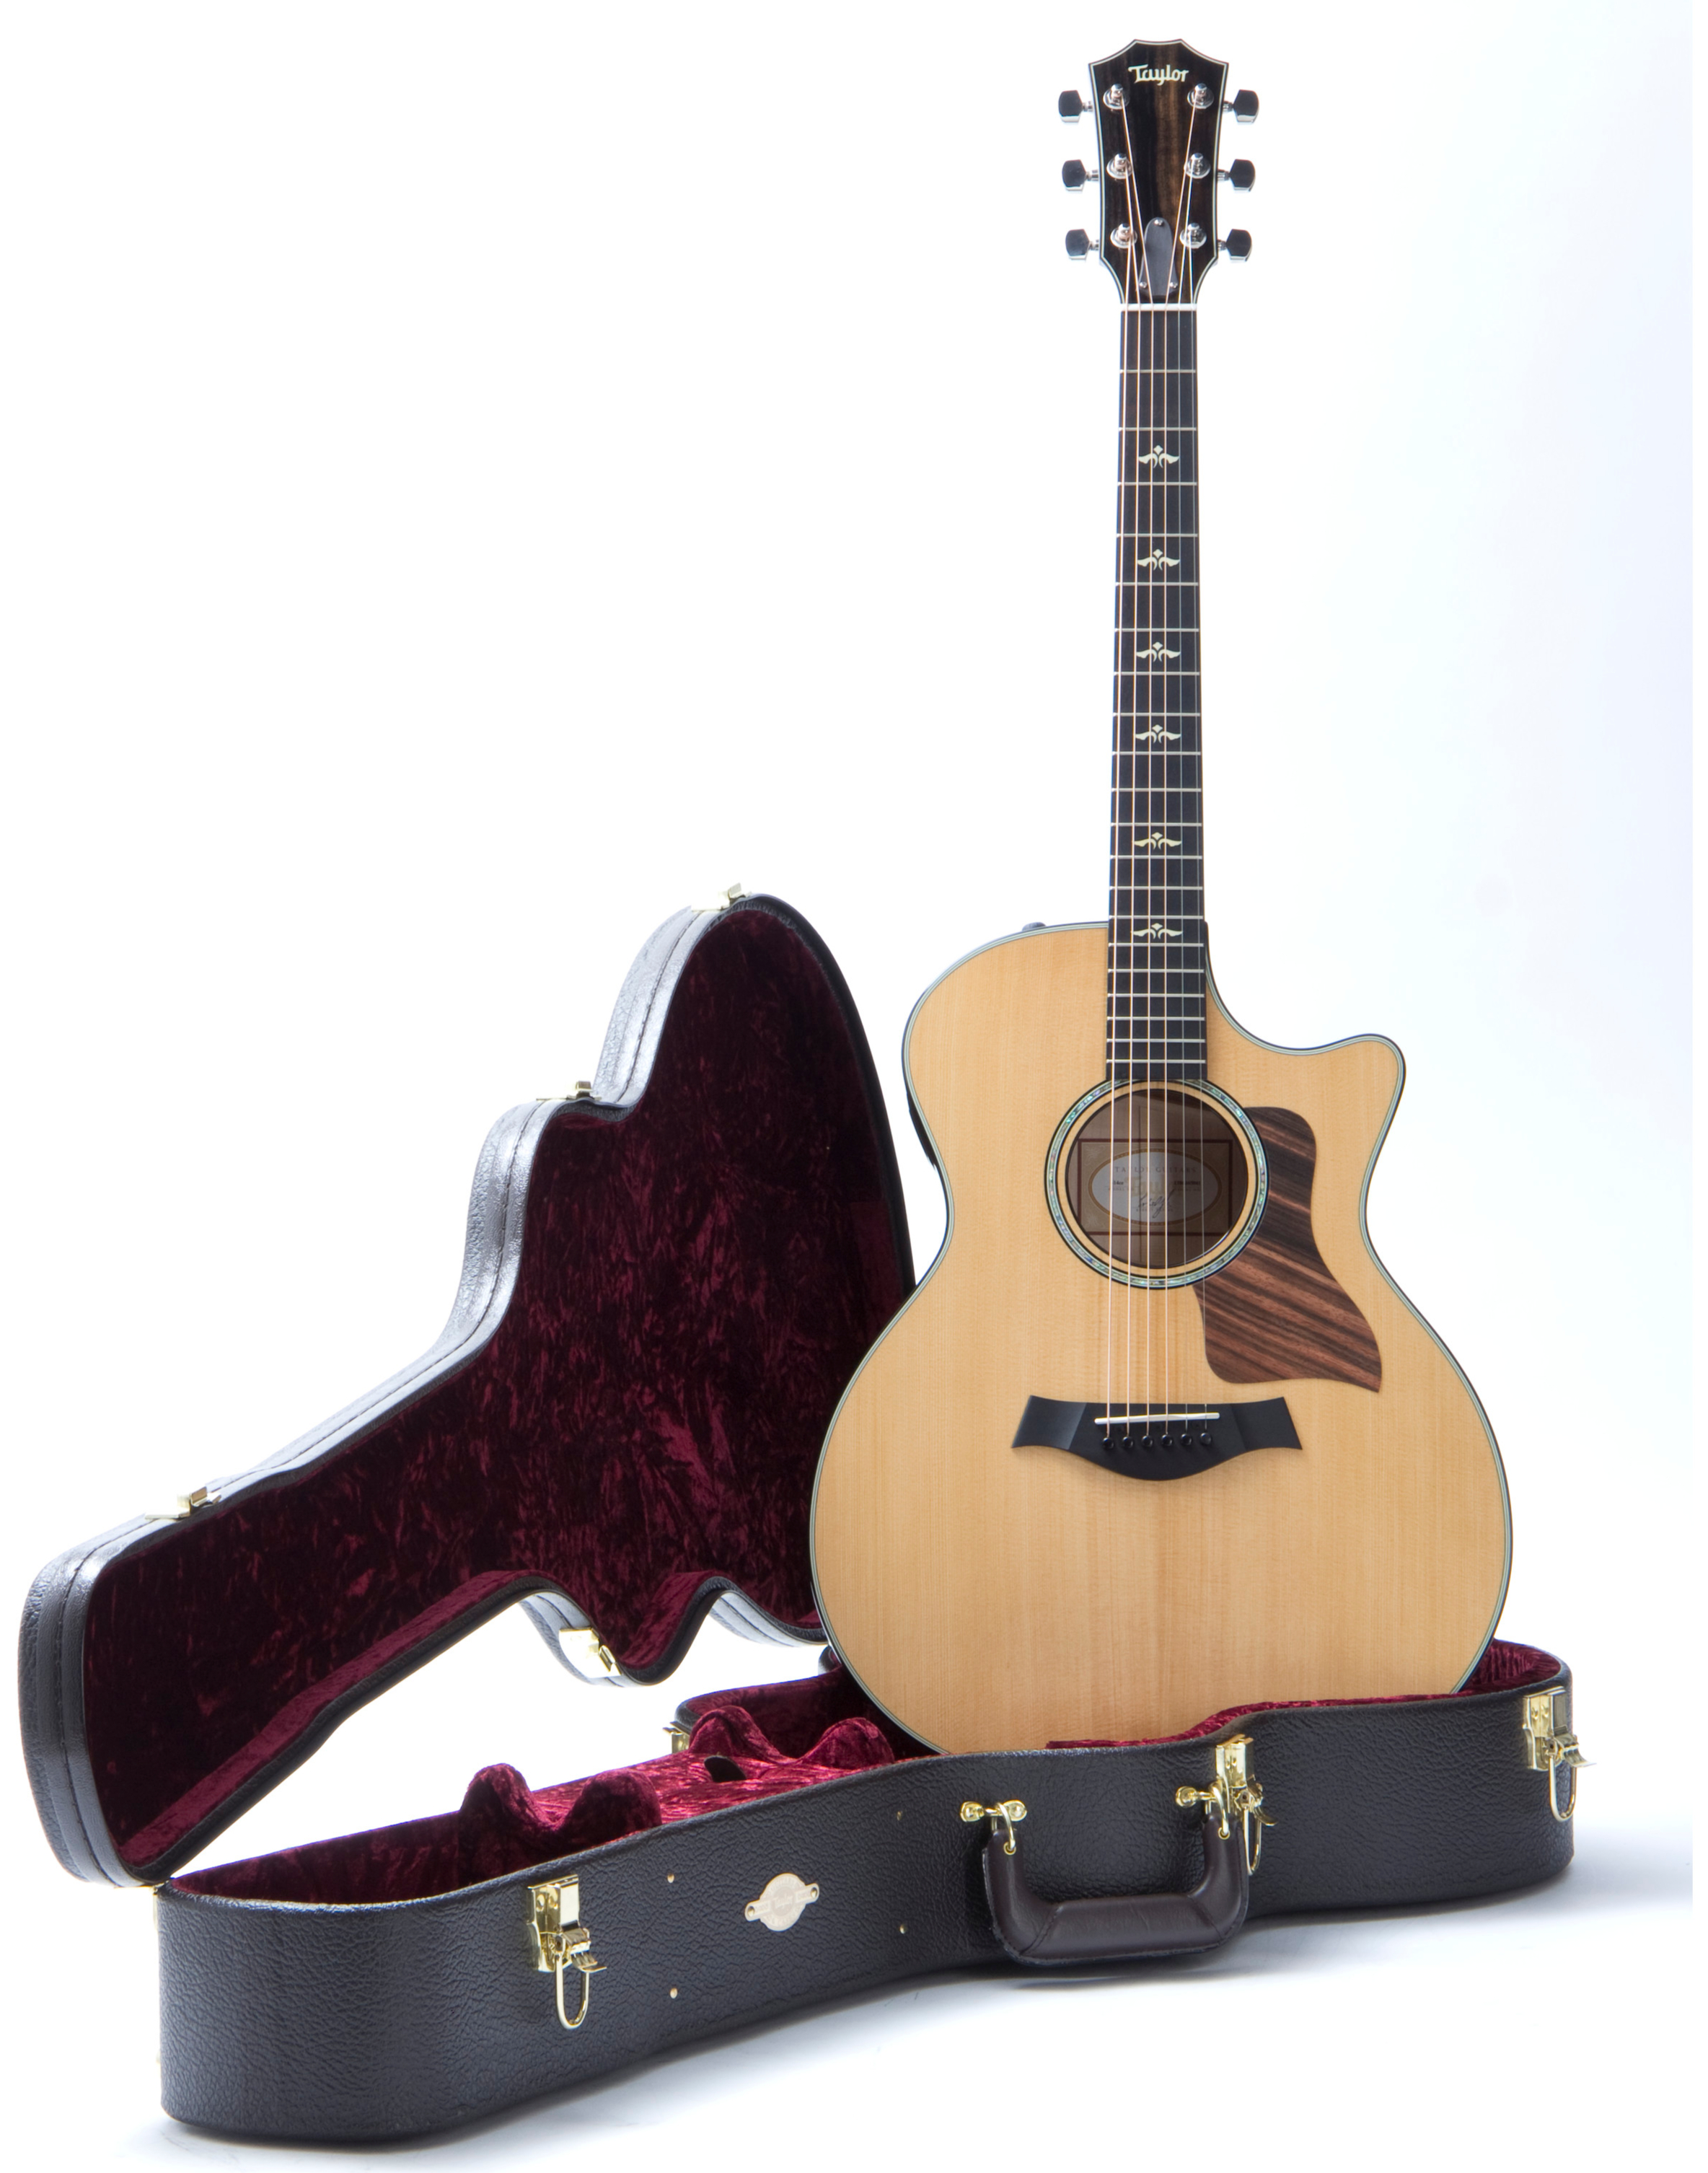 Incl. Taylor Deluxe Hard-shell Case